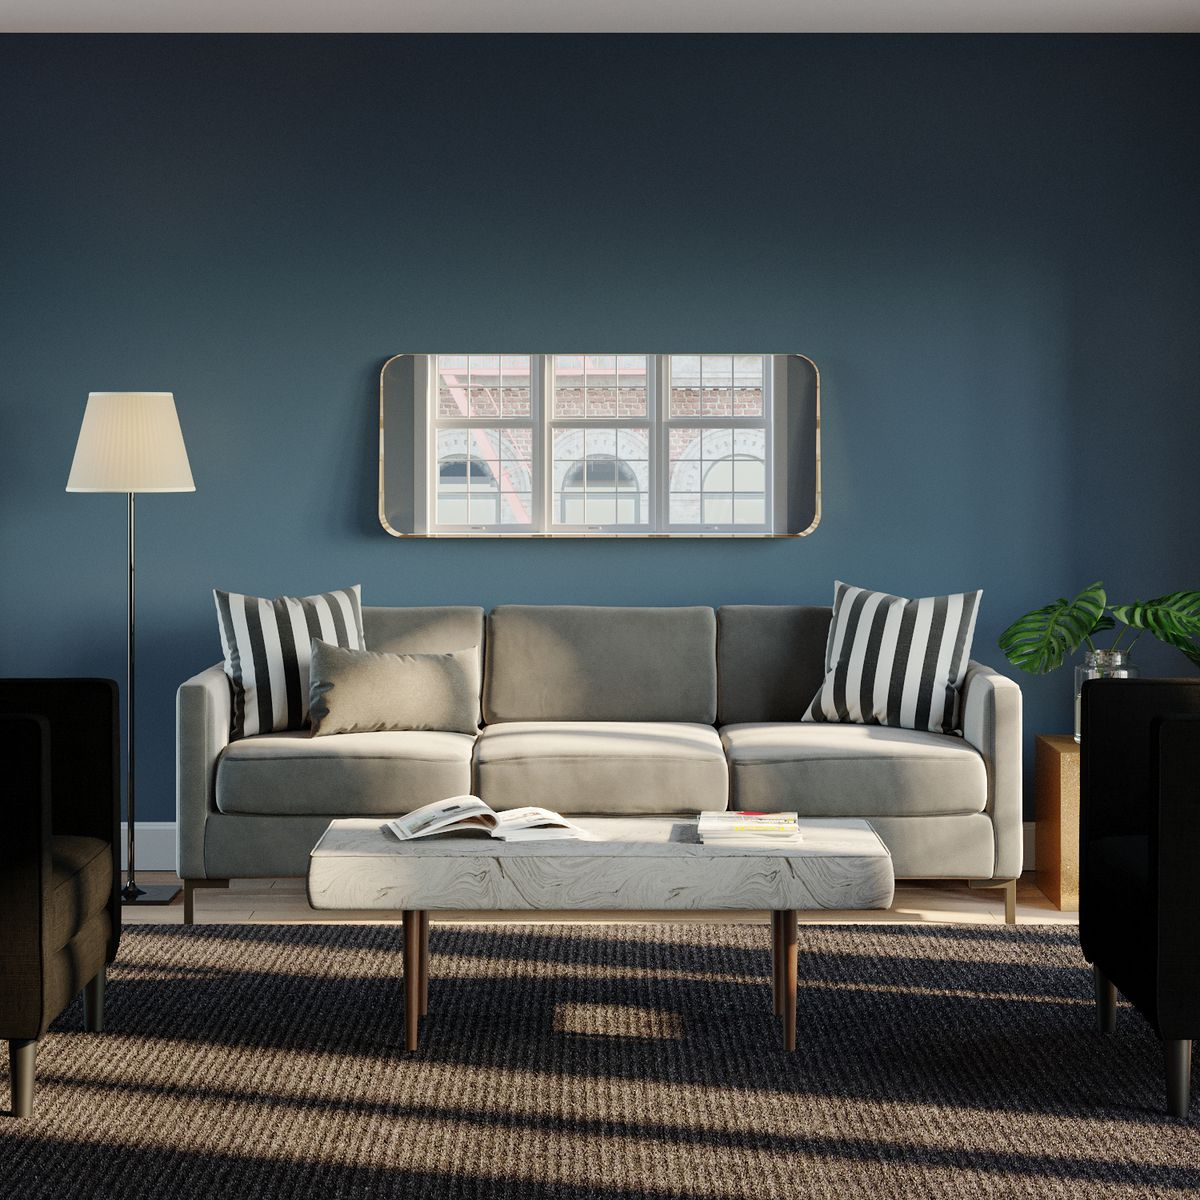 Beige sofa in a room with blue walls, and horizontal mirror.